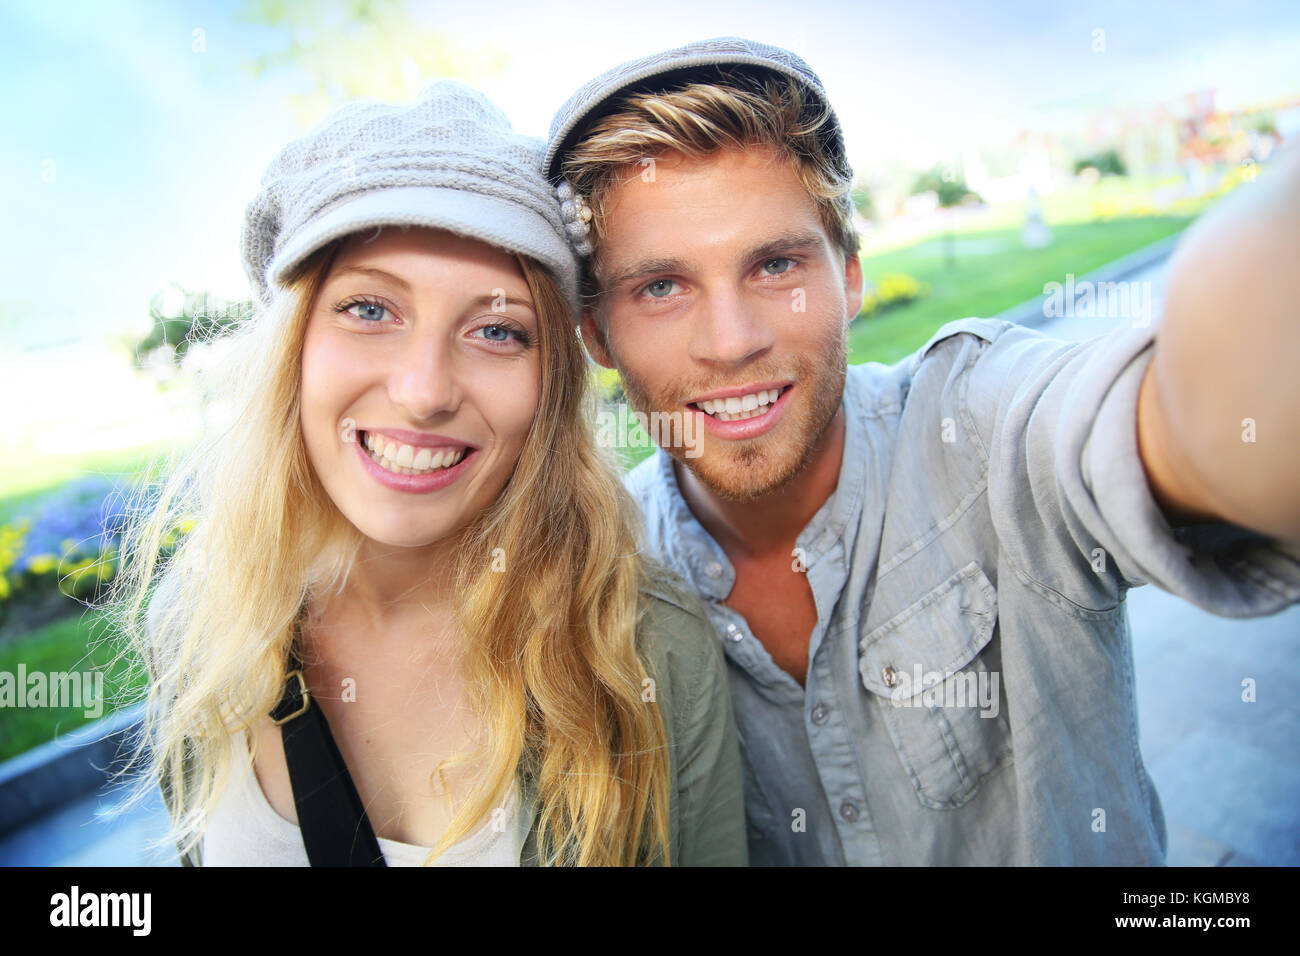 Cheerful trendy couple taking self-portrait picture - Stock Image